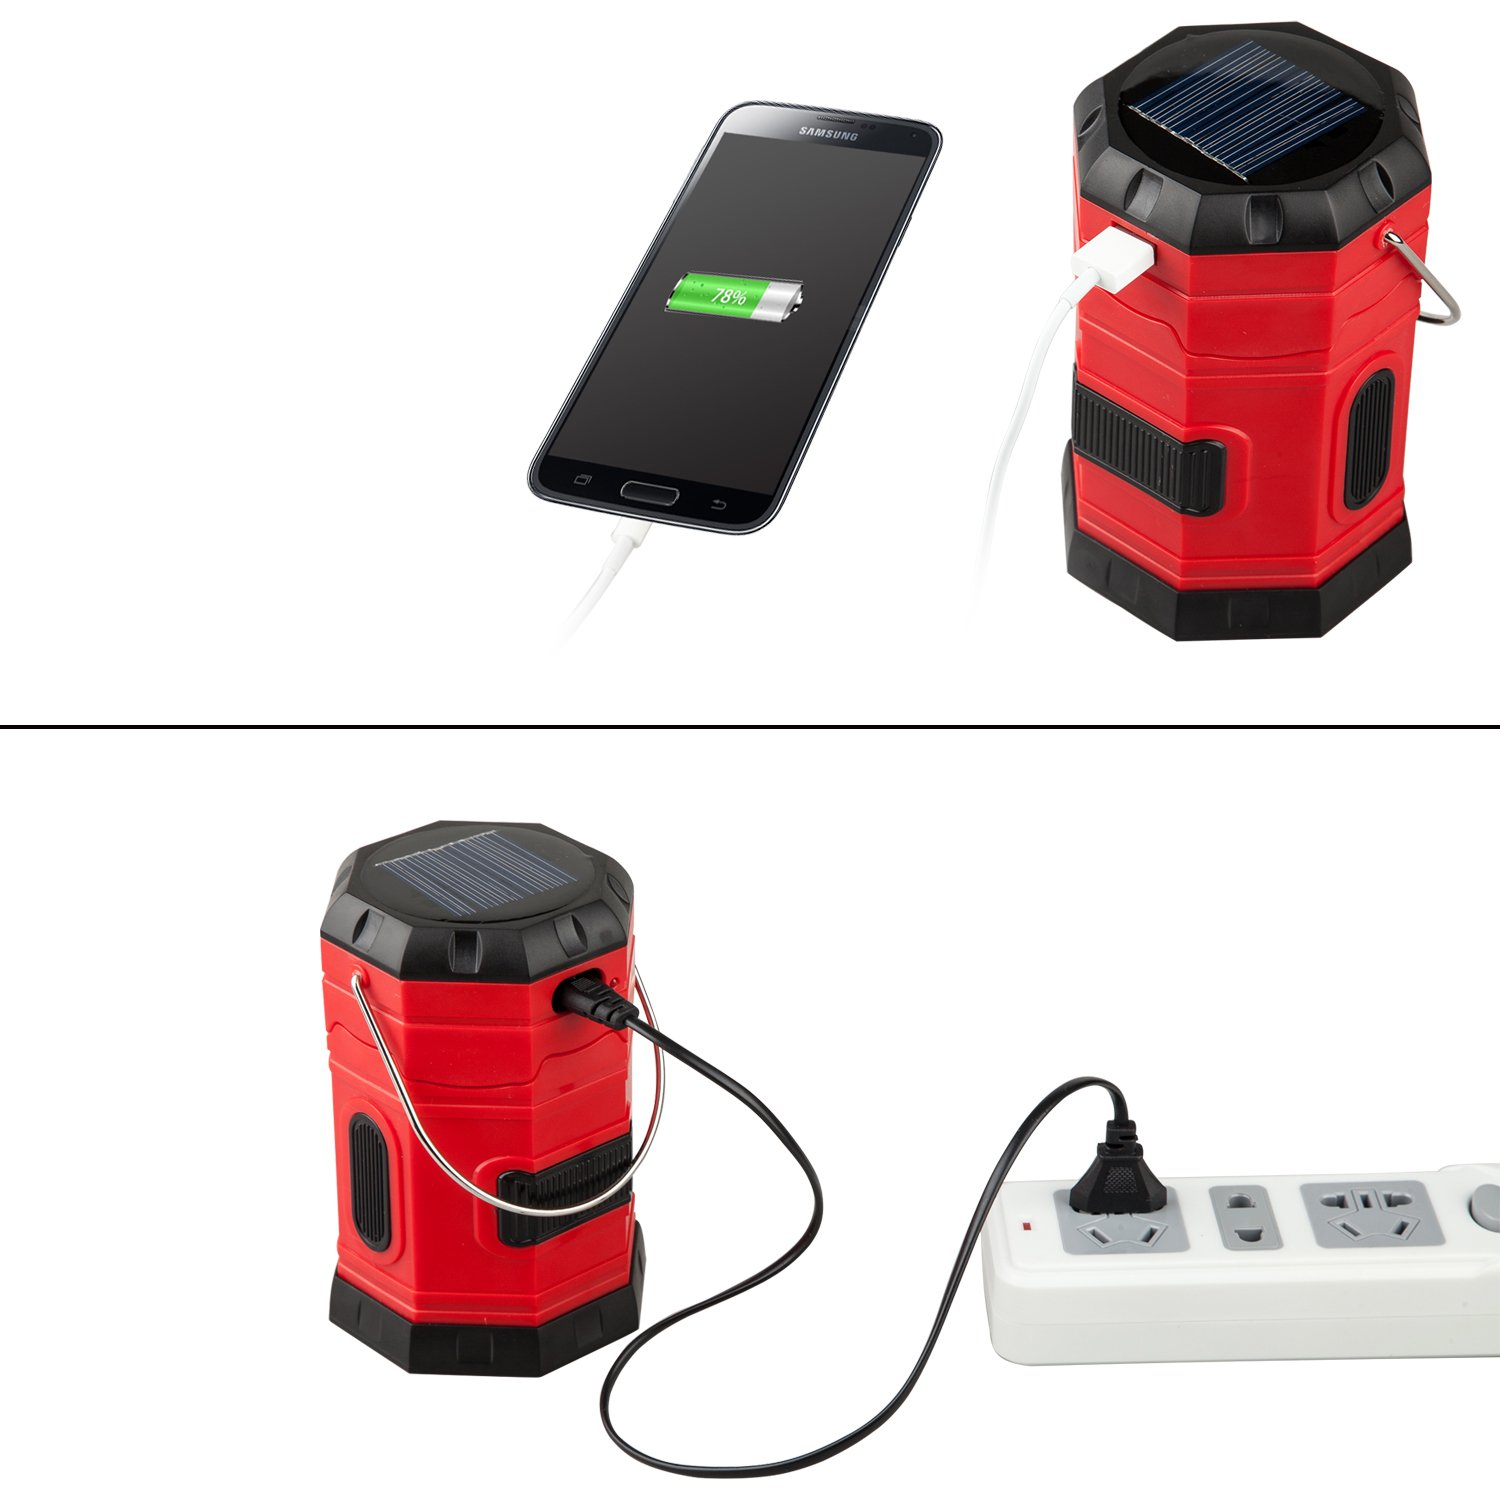 Amazon.com: TANSOREN Portable LED Camping Lantern Solar USB Rechargeable Or  3 AA Power Supply, Built In Power Bank For Android Charger, ...